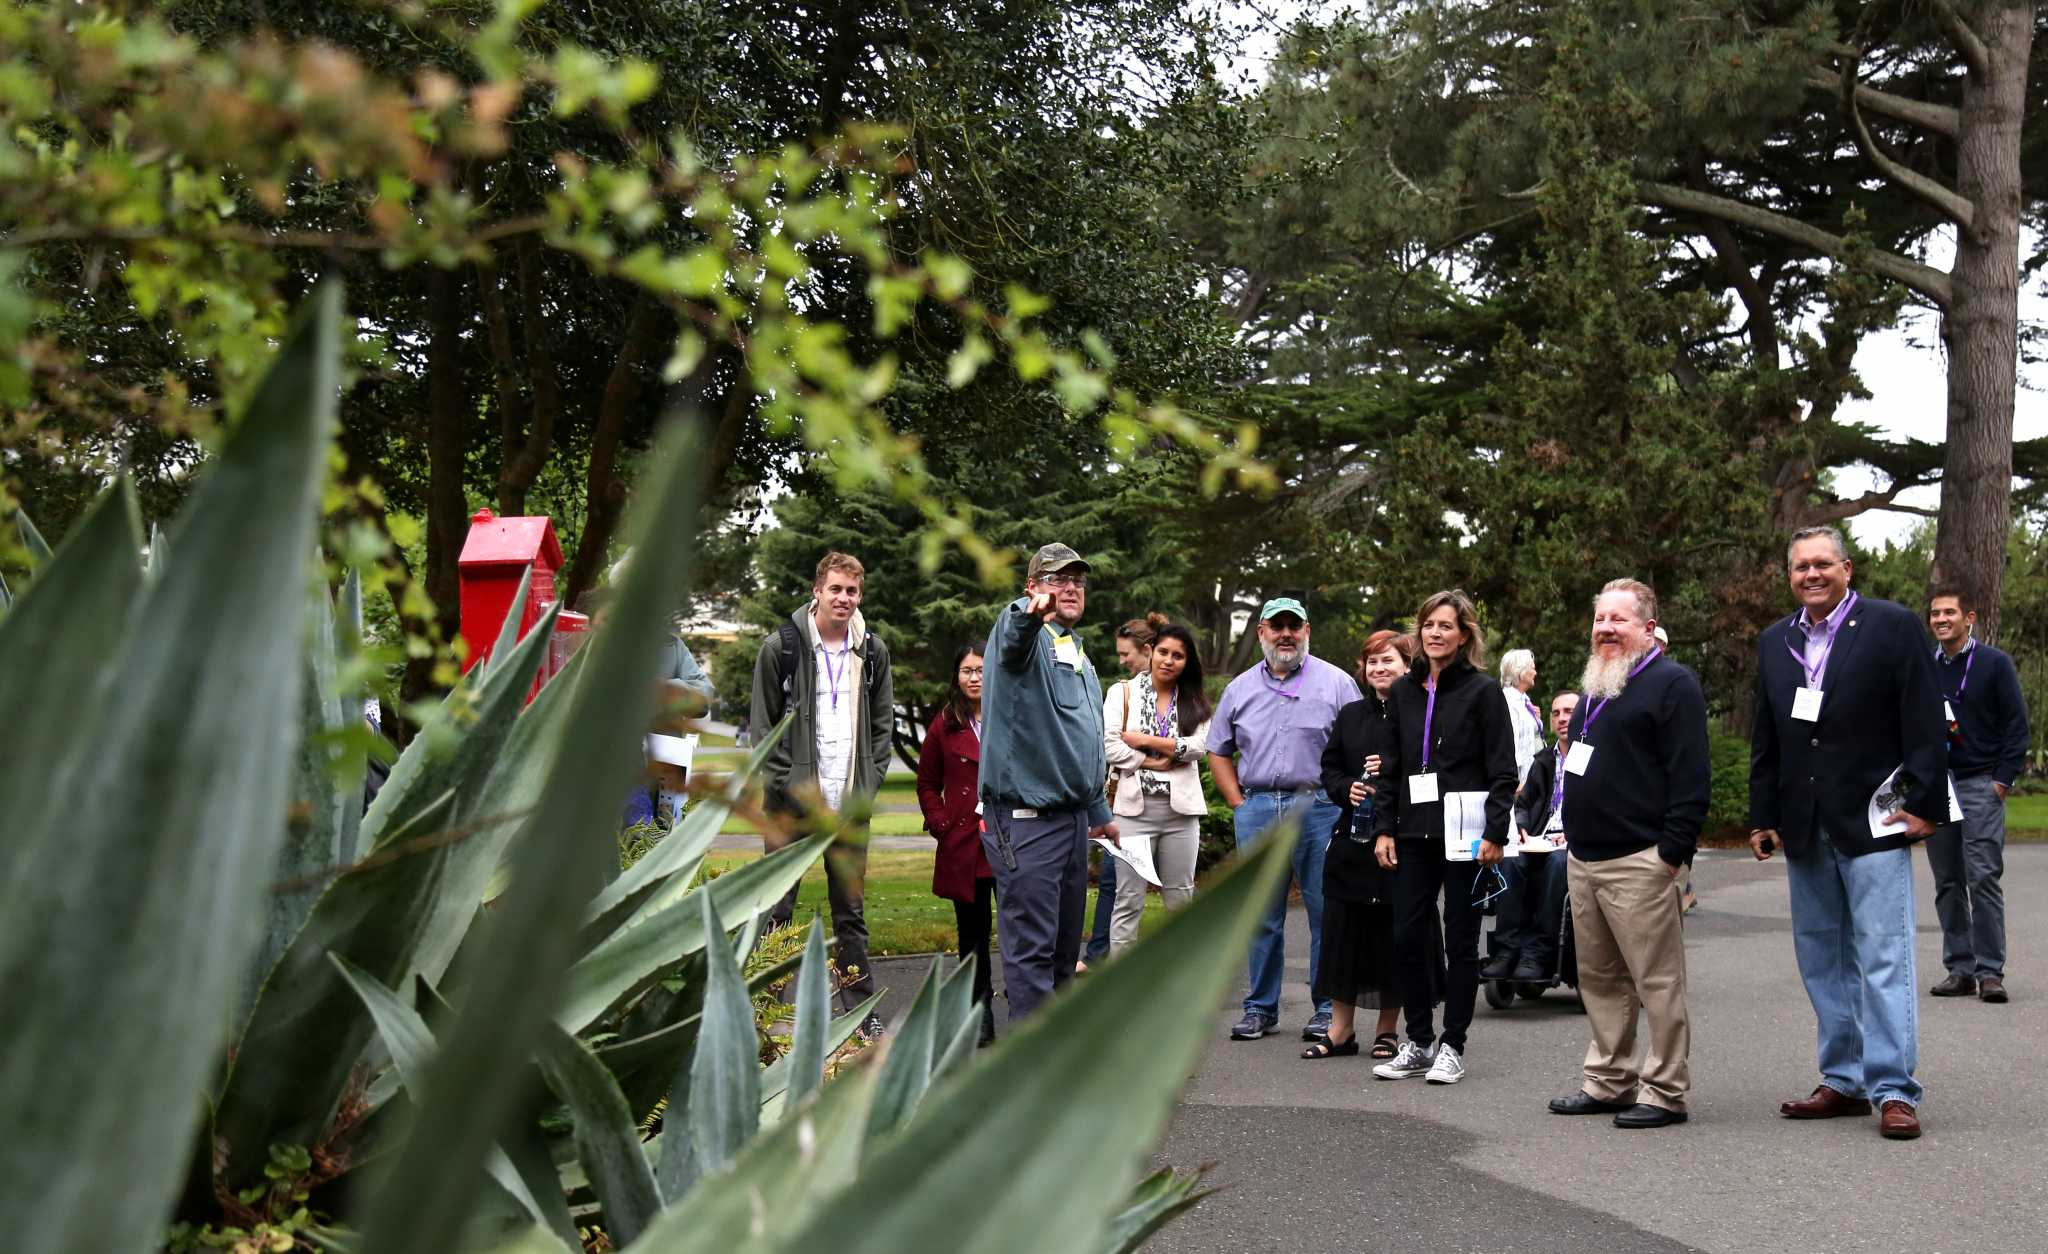 SF State gardener, Hugh Ennis, gives a landscape tour to a group of 15 attendees at the California Higher Education Sustainability Conference Wednesday July 22, 2015. (Xpress / Emma Chiang)